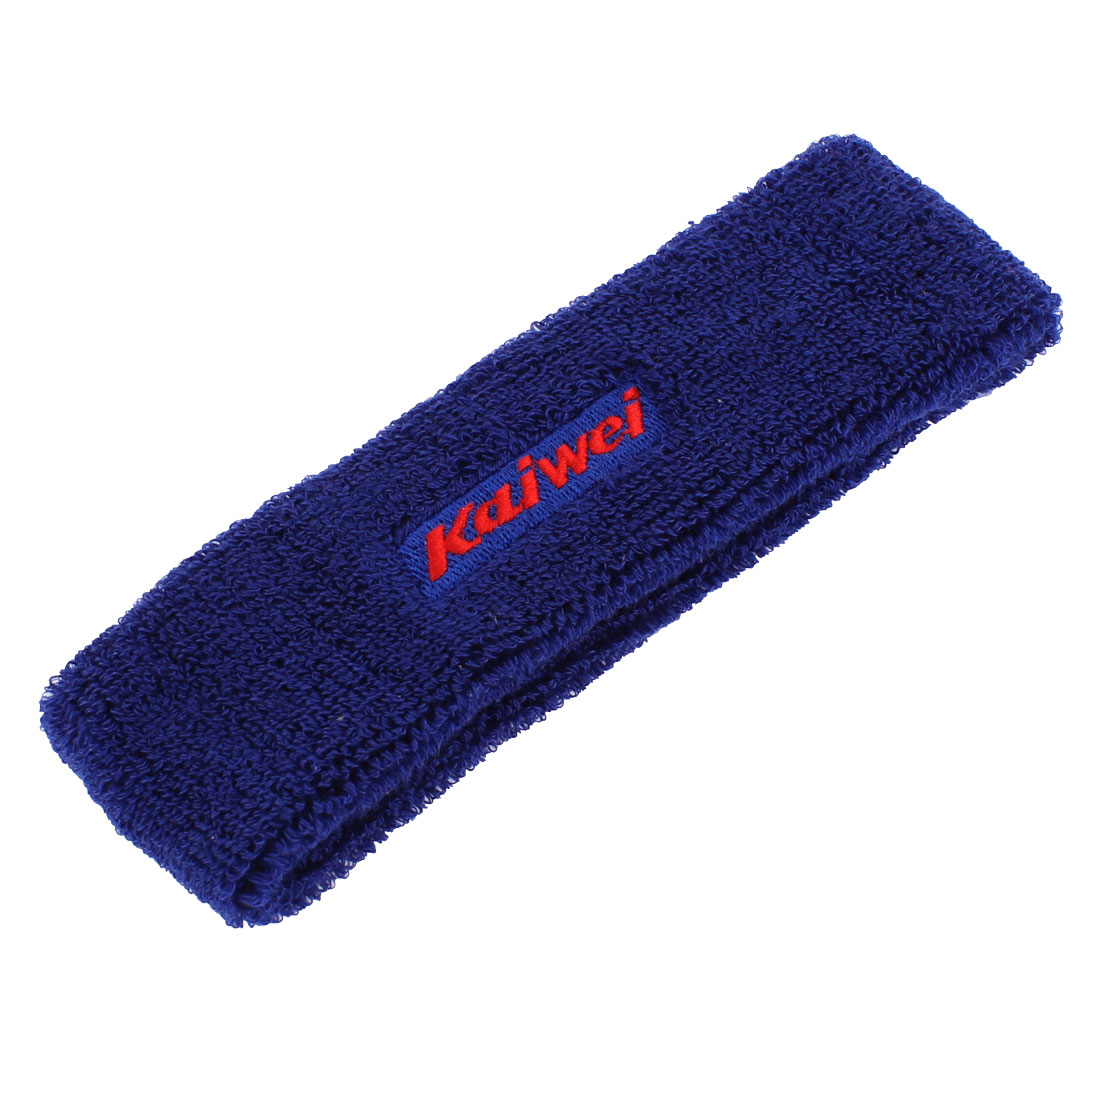 Yoga Gym Sports Sweatband Headband Stretch Head Hair Band Blue